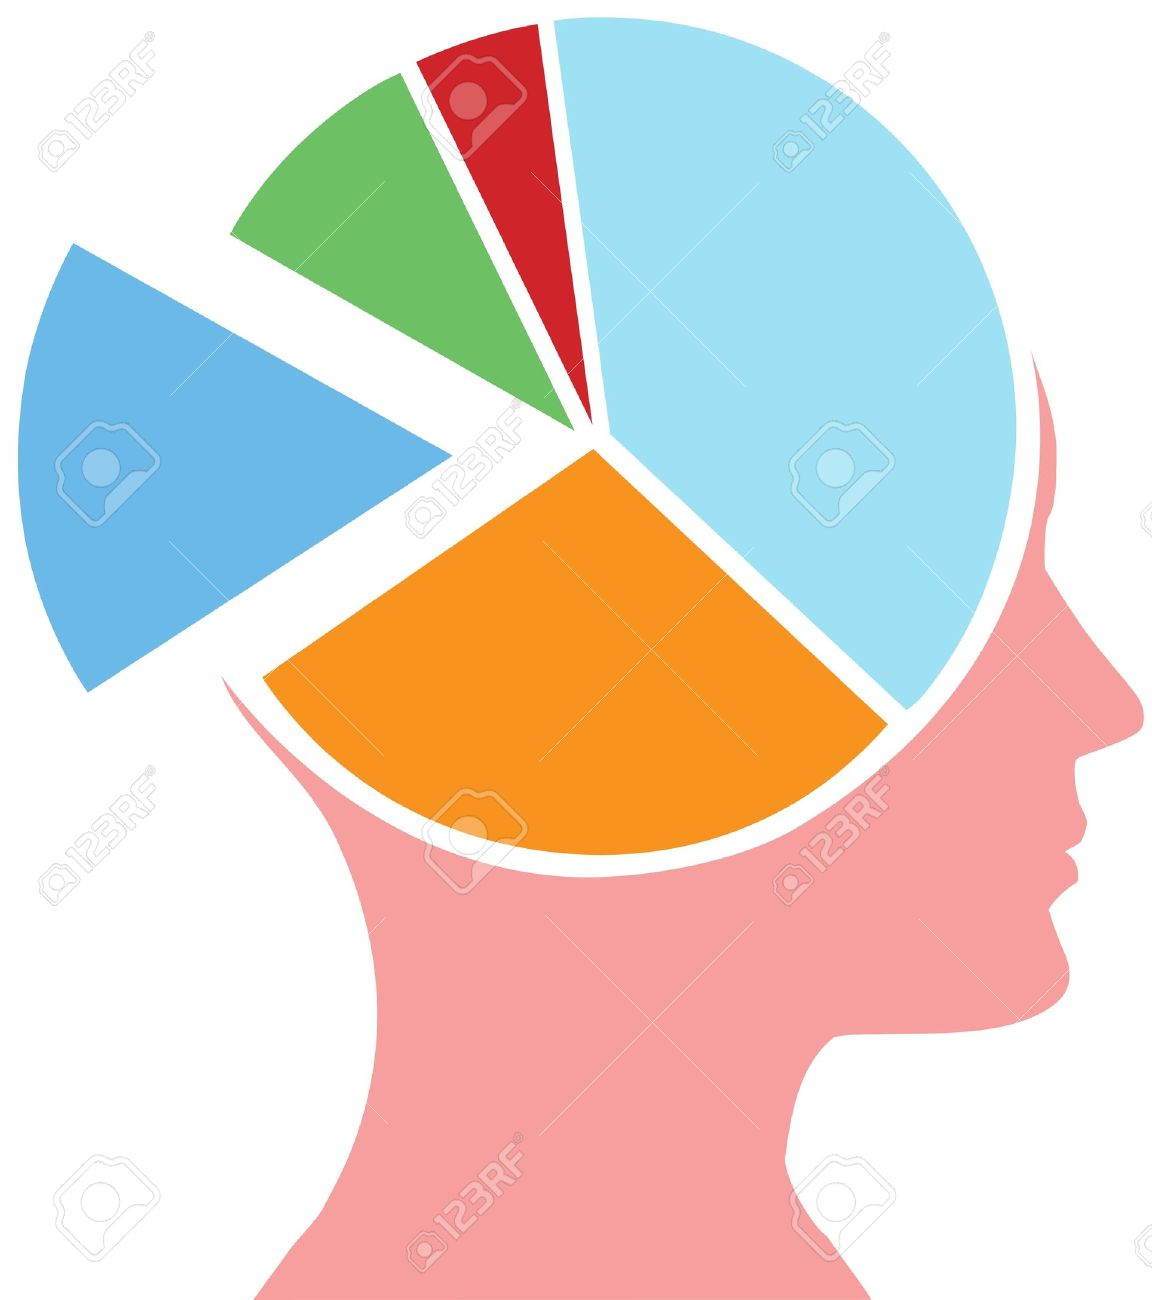 Mind share person has a head for business as a financial pie chart Stock Vector - 10619665